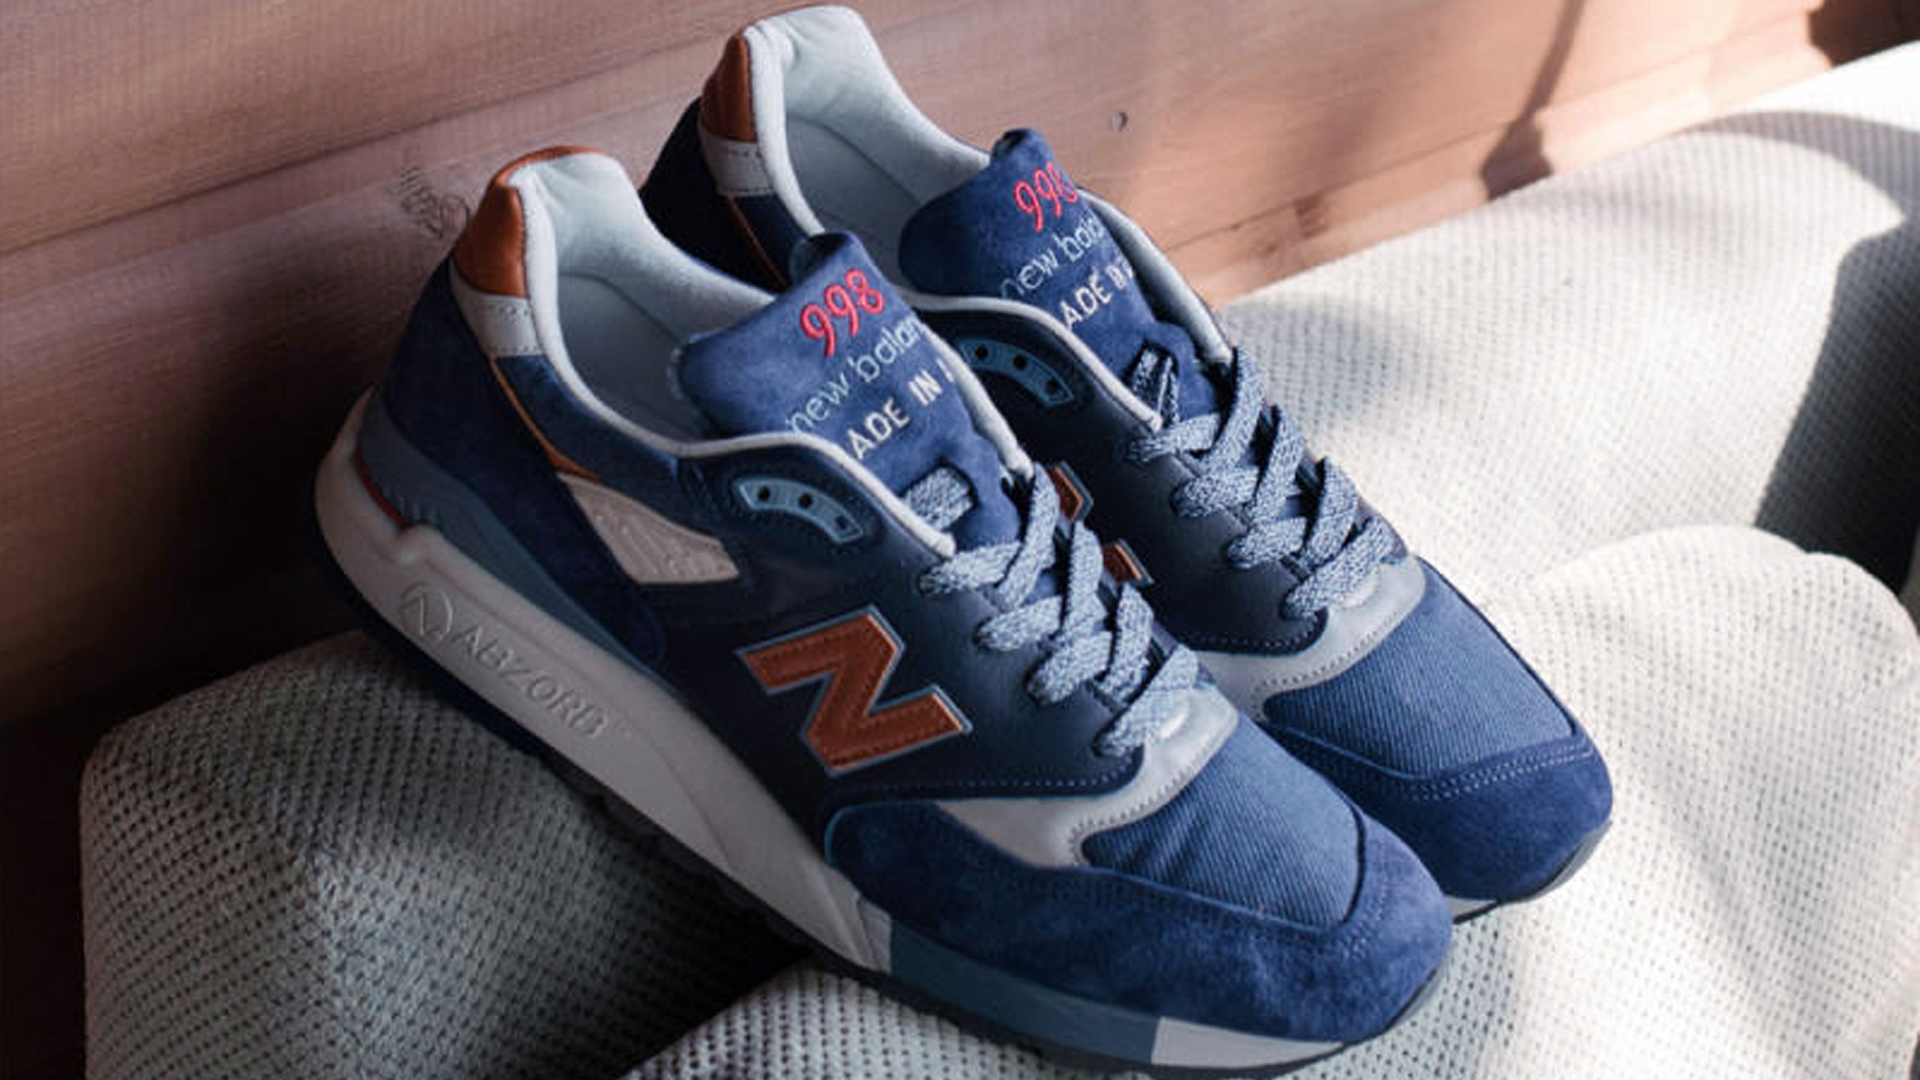 SNEAK PEEK EXCLUSIVELY UNLOCKS THE USA DISTINCT RETRO SKI COLLECTION 998 & 990